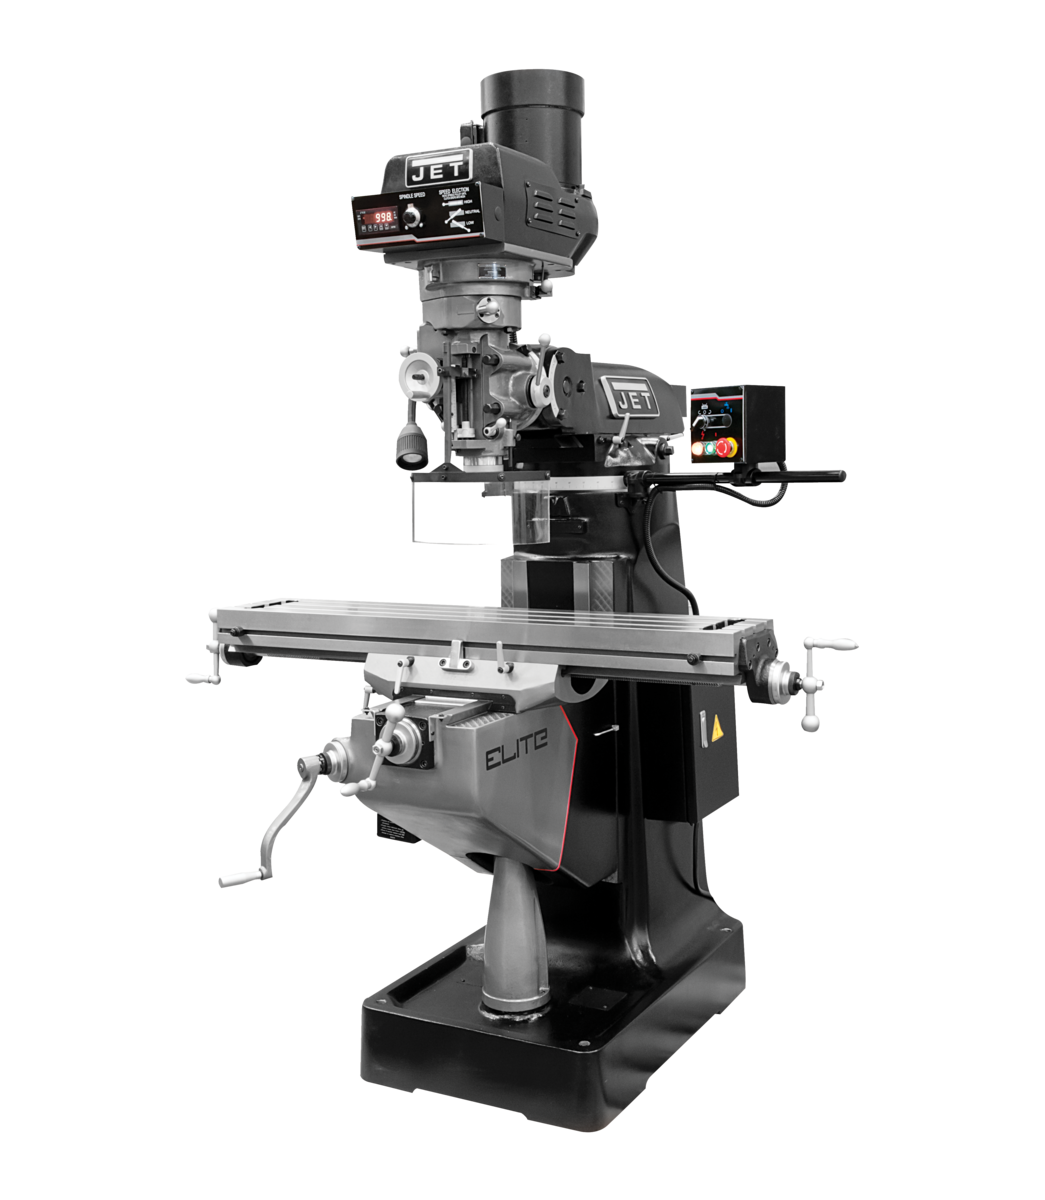 EVS-949 Mill with 3-Axis ACU-RITE 203 (Knee) DRO and Servo X, Y-Axis Powerfeeds and USA Air Powered Draw Bar